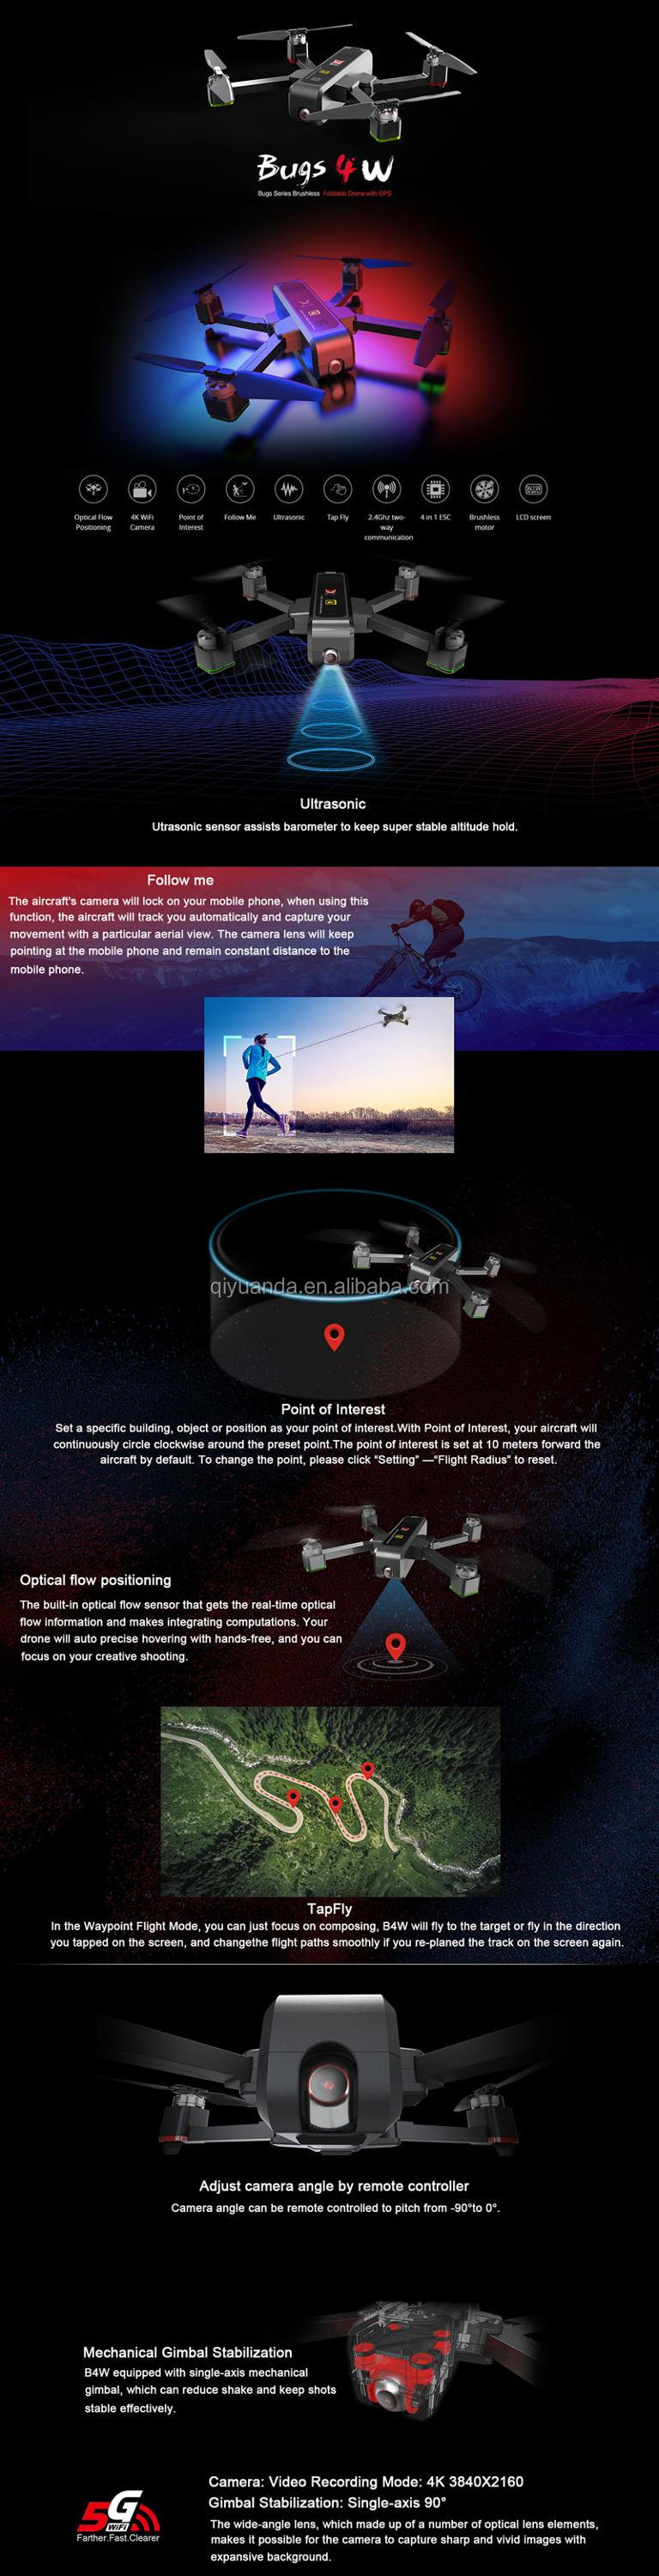 MJX Bugs B4W Brushless Foldable 5G WIFI FPV professional drone with 4K HD camera and GPS vs F11 Quadcopter